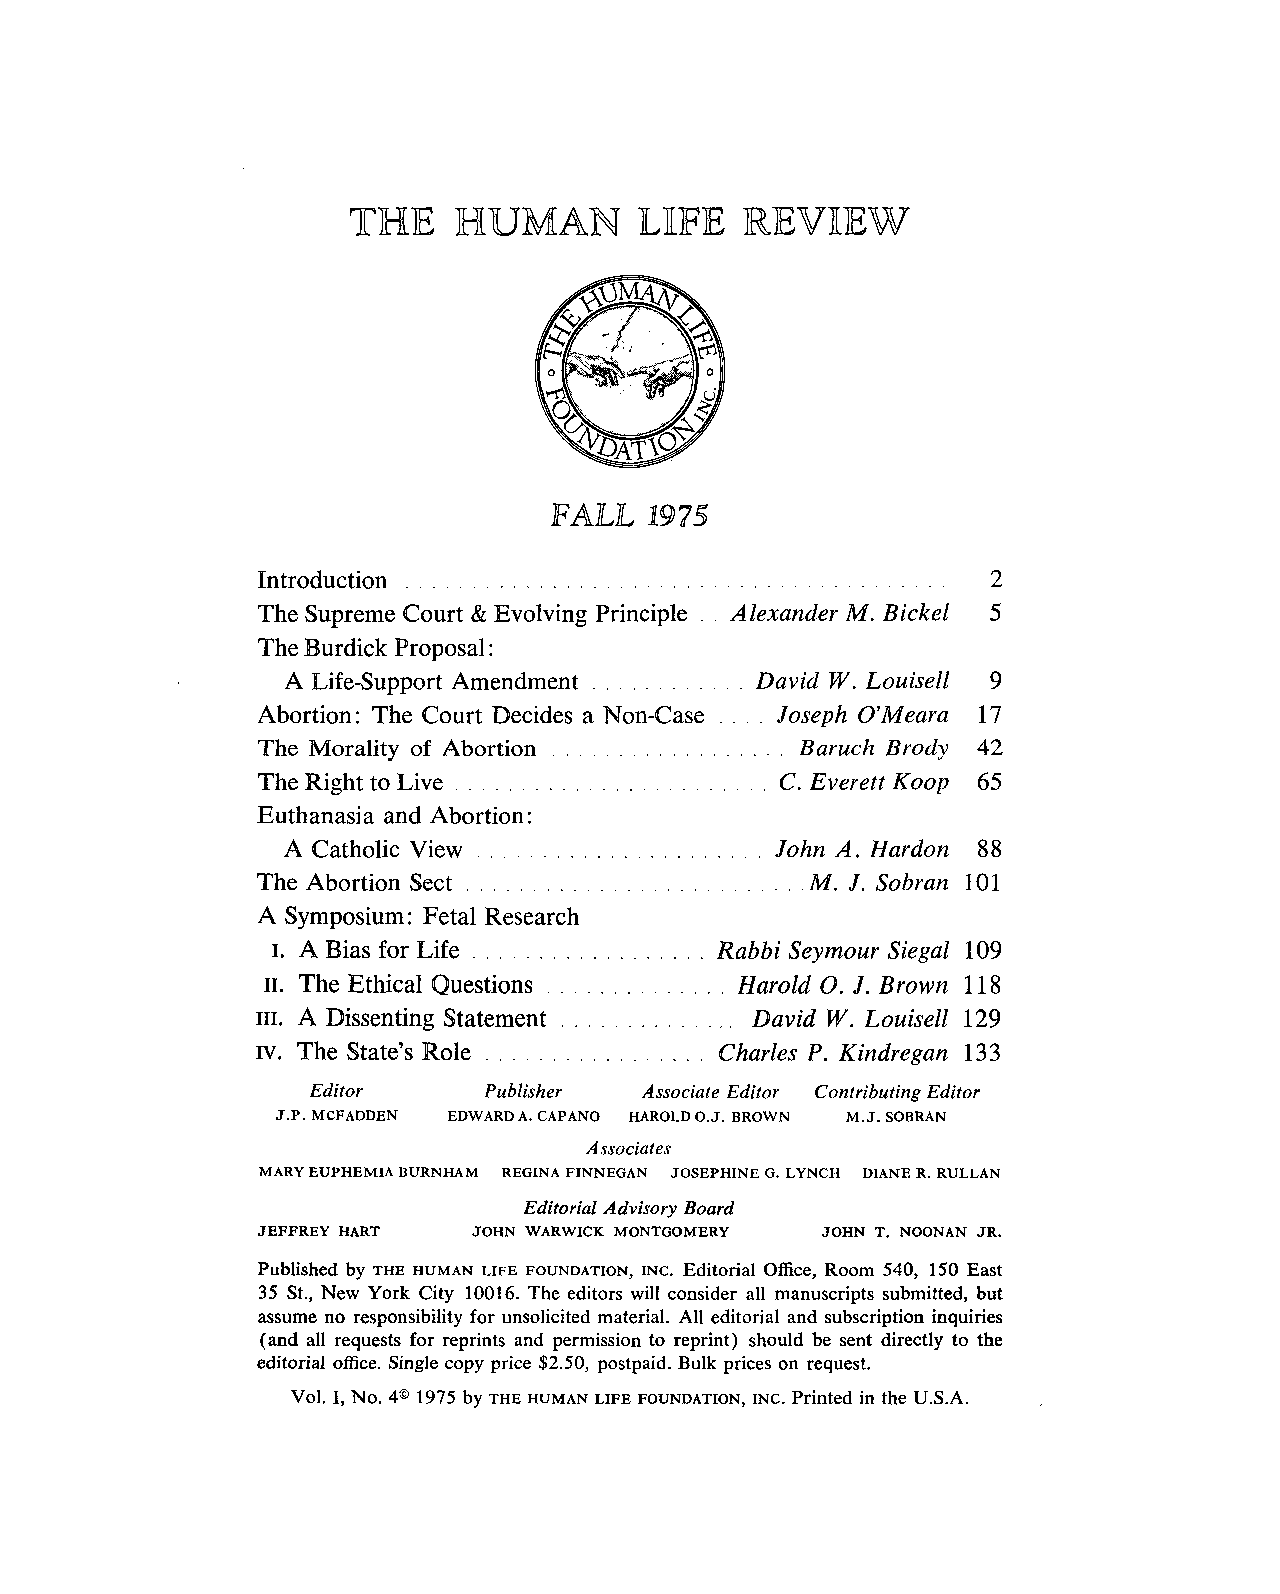 The Human Life Review Fall 1975 - The Human Life Review